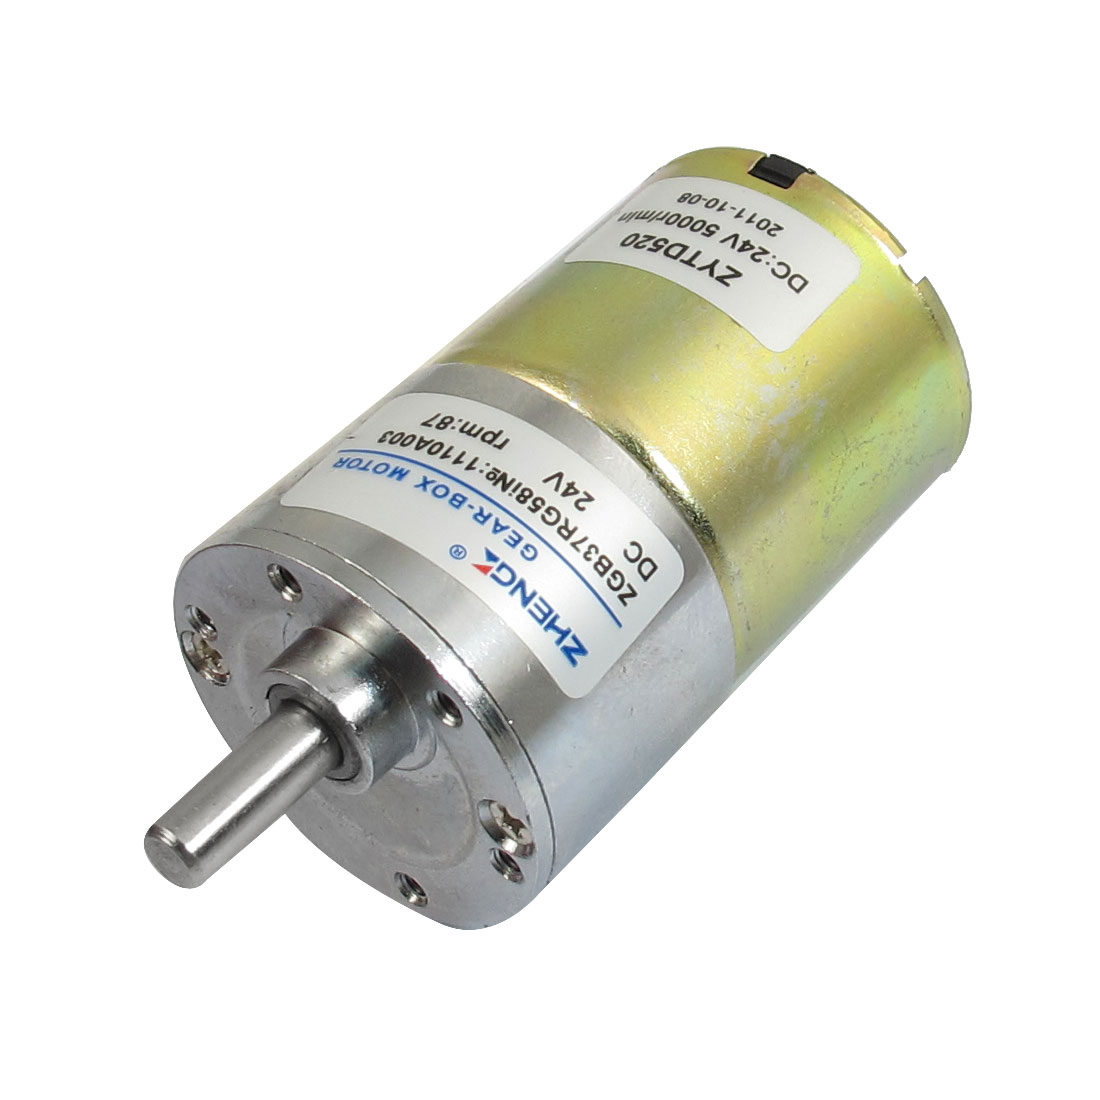 DC 24V 87RPM Output Speed Cylinder Shaped Oven Geared Motor